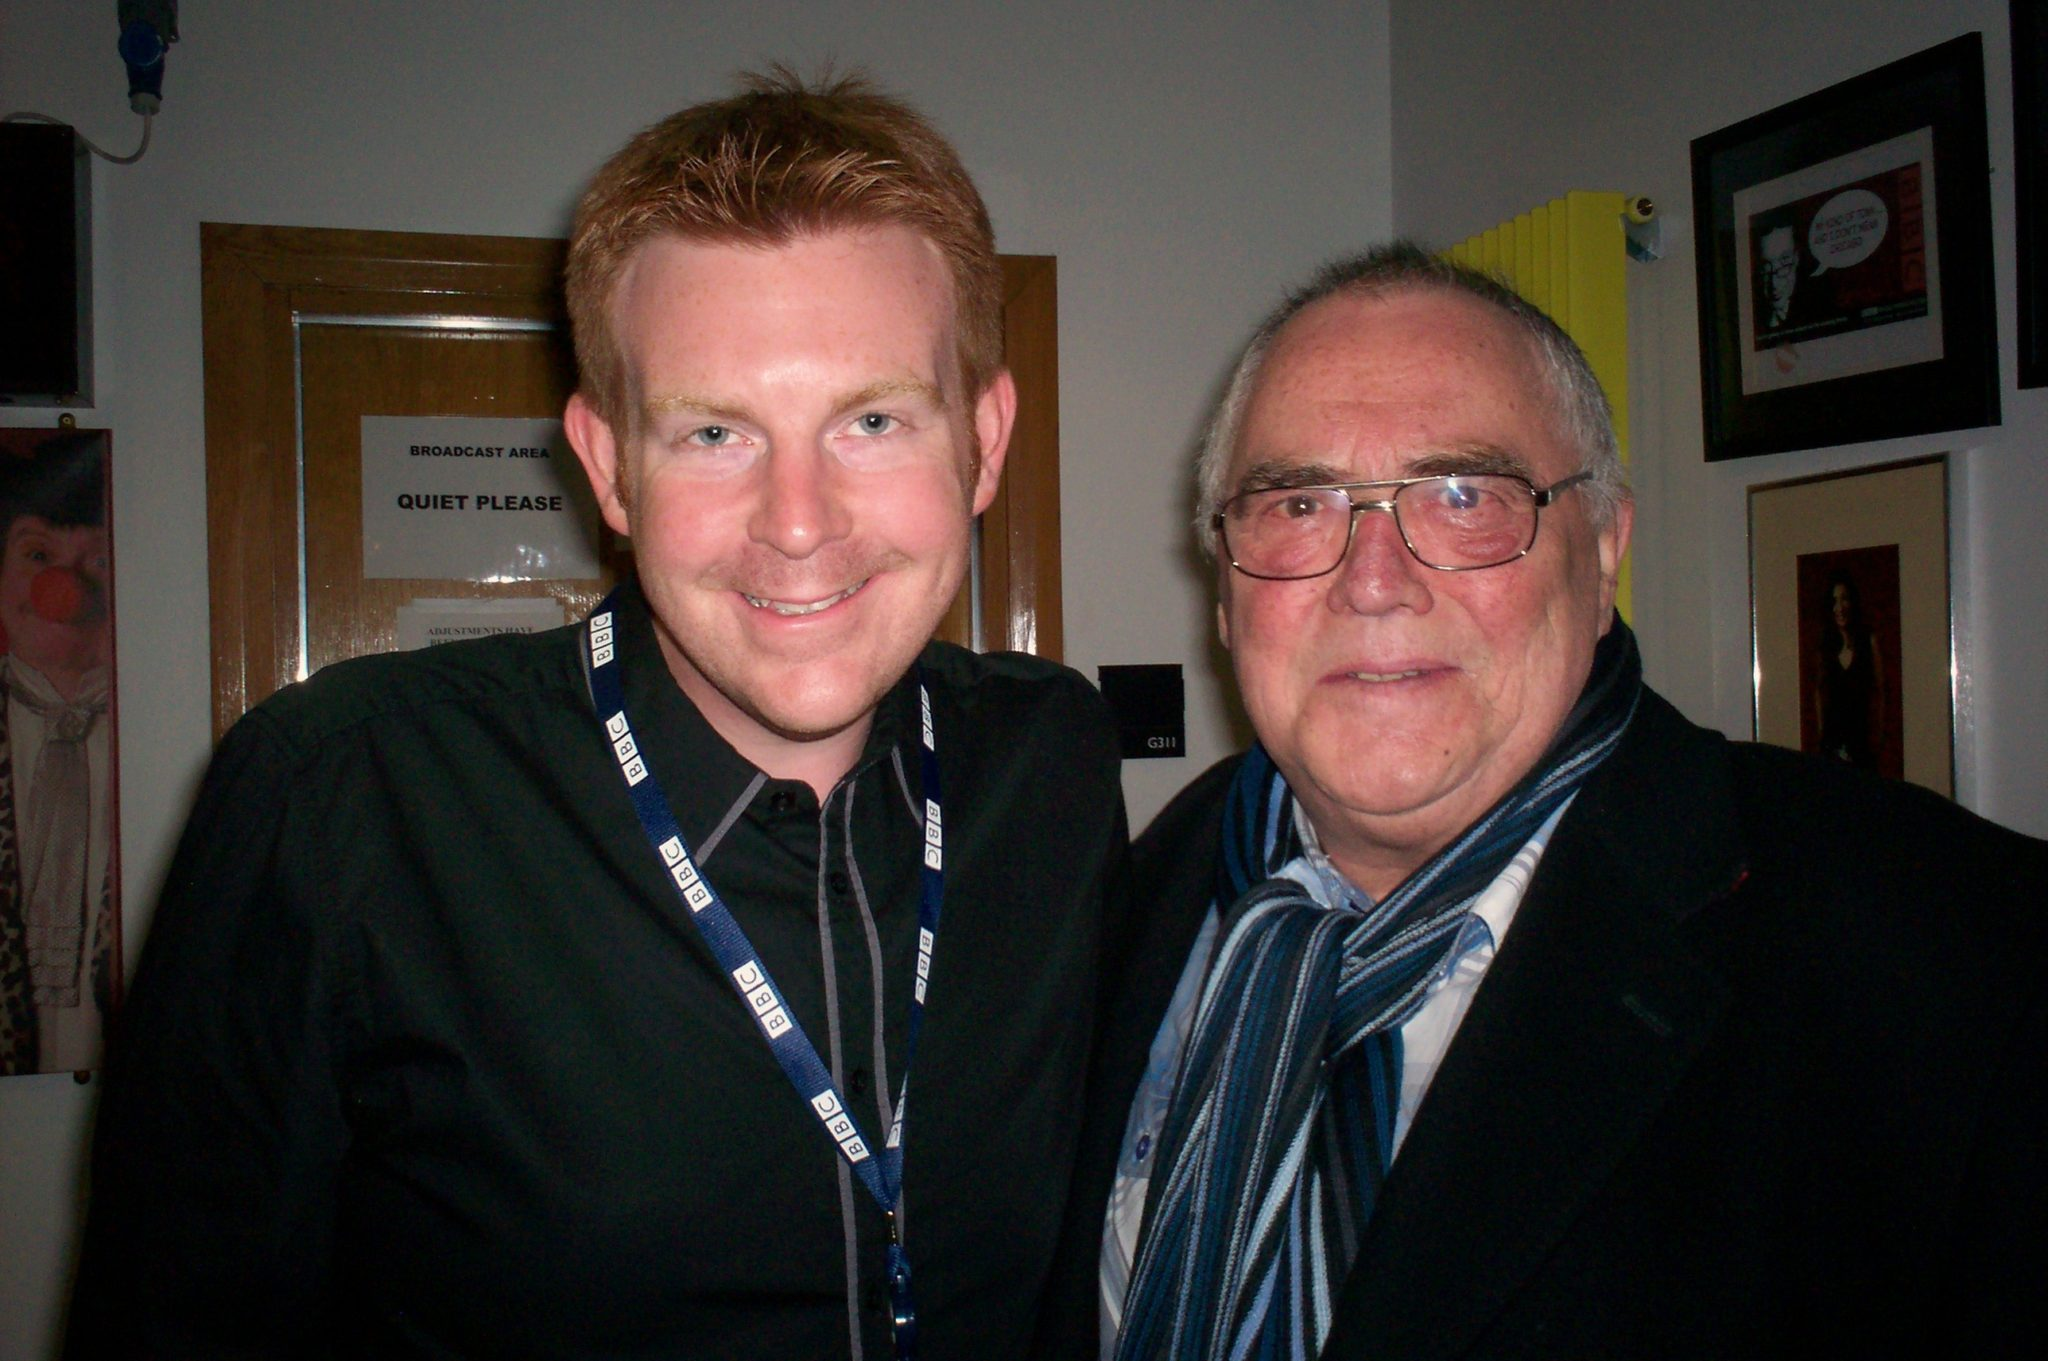 Enjoy Celebrity Radio's Bill Tarmey RIP Life Story Interview Jack Duckworth Coronation Street….. RIP the brilliant Bill Tarmey. Bill was a tremendous singer, comedian and […]